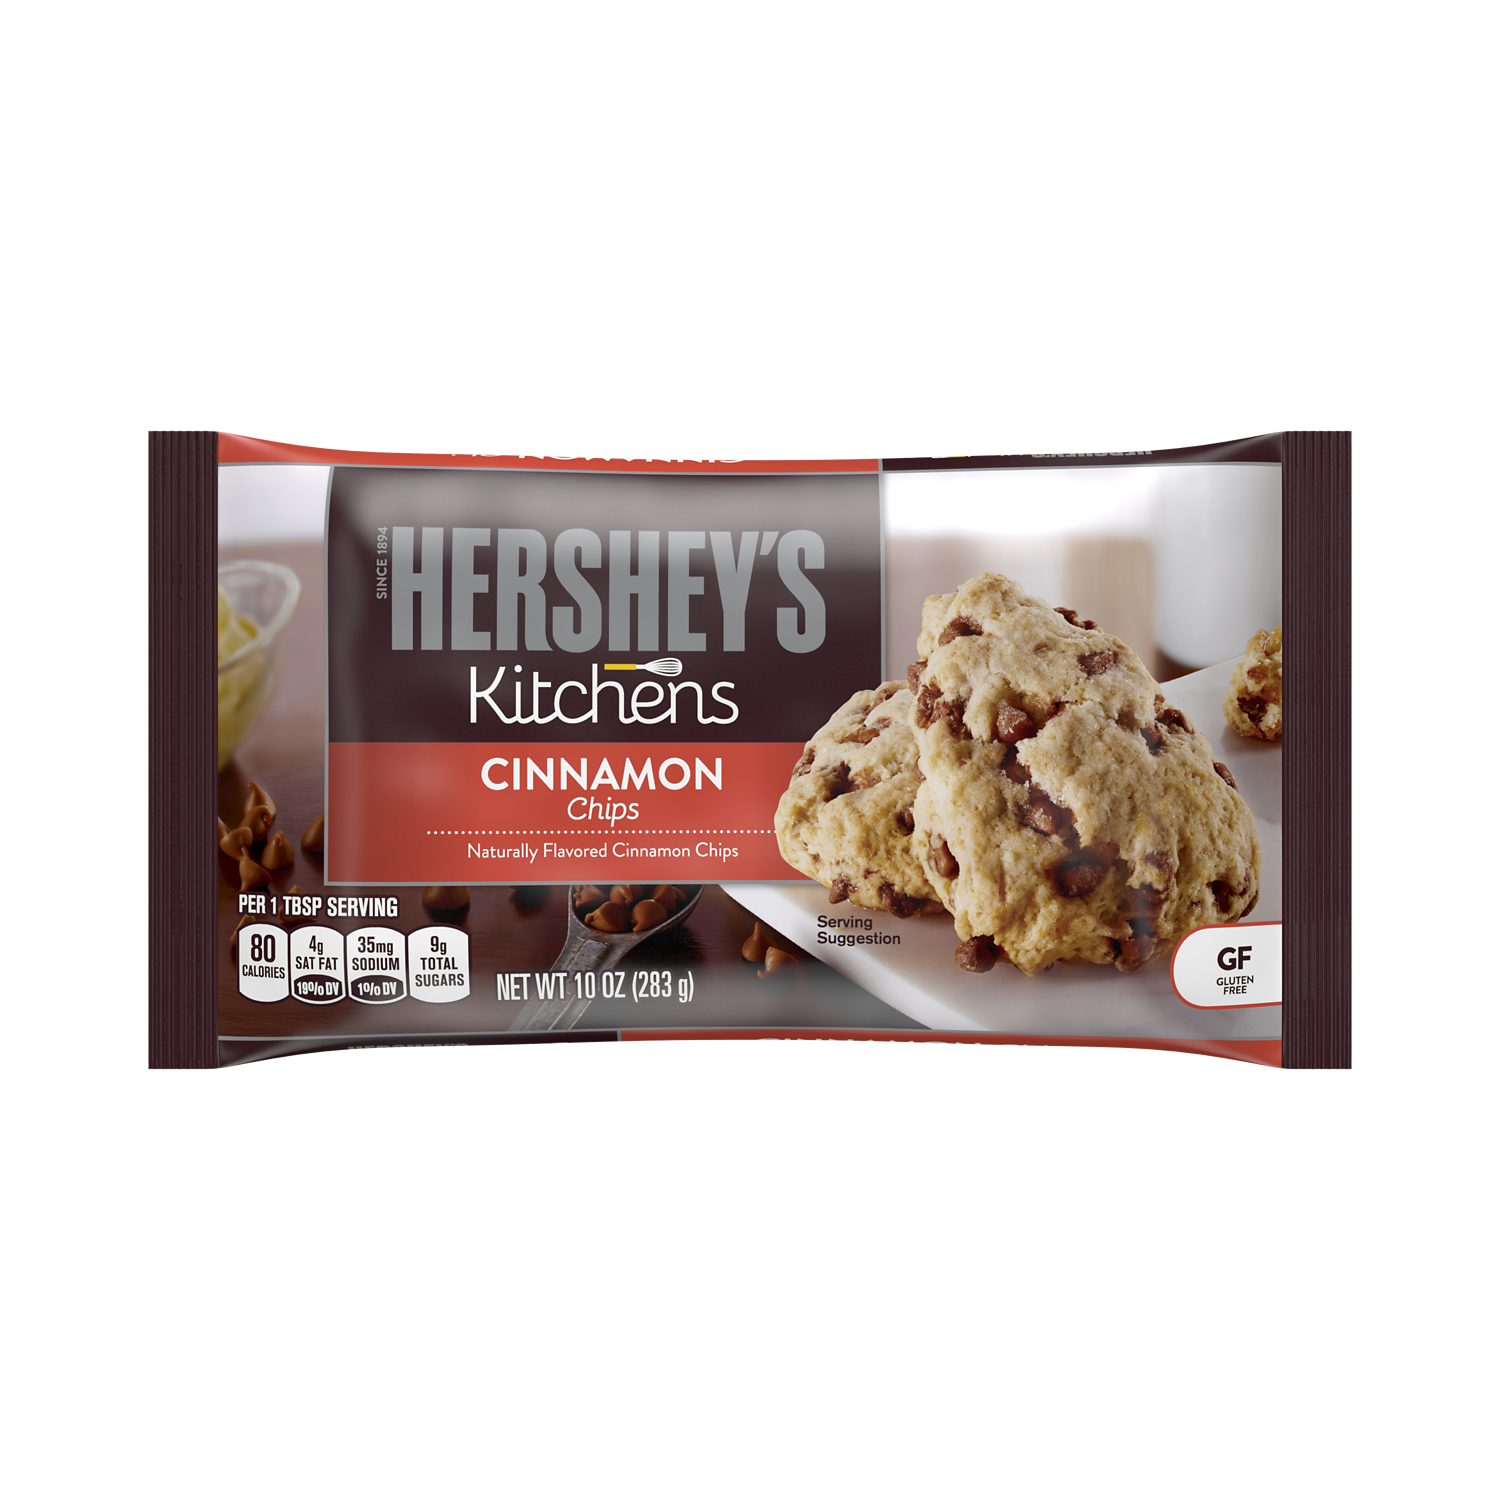 HERSHEY'S Cinnamon Chips, 10 oz bag - Front of Package